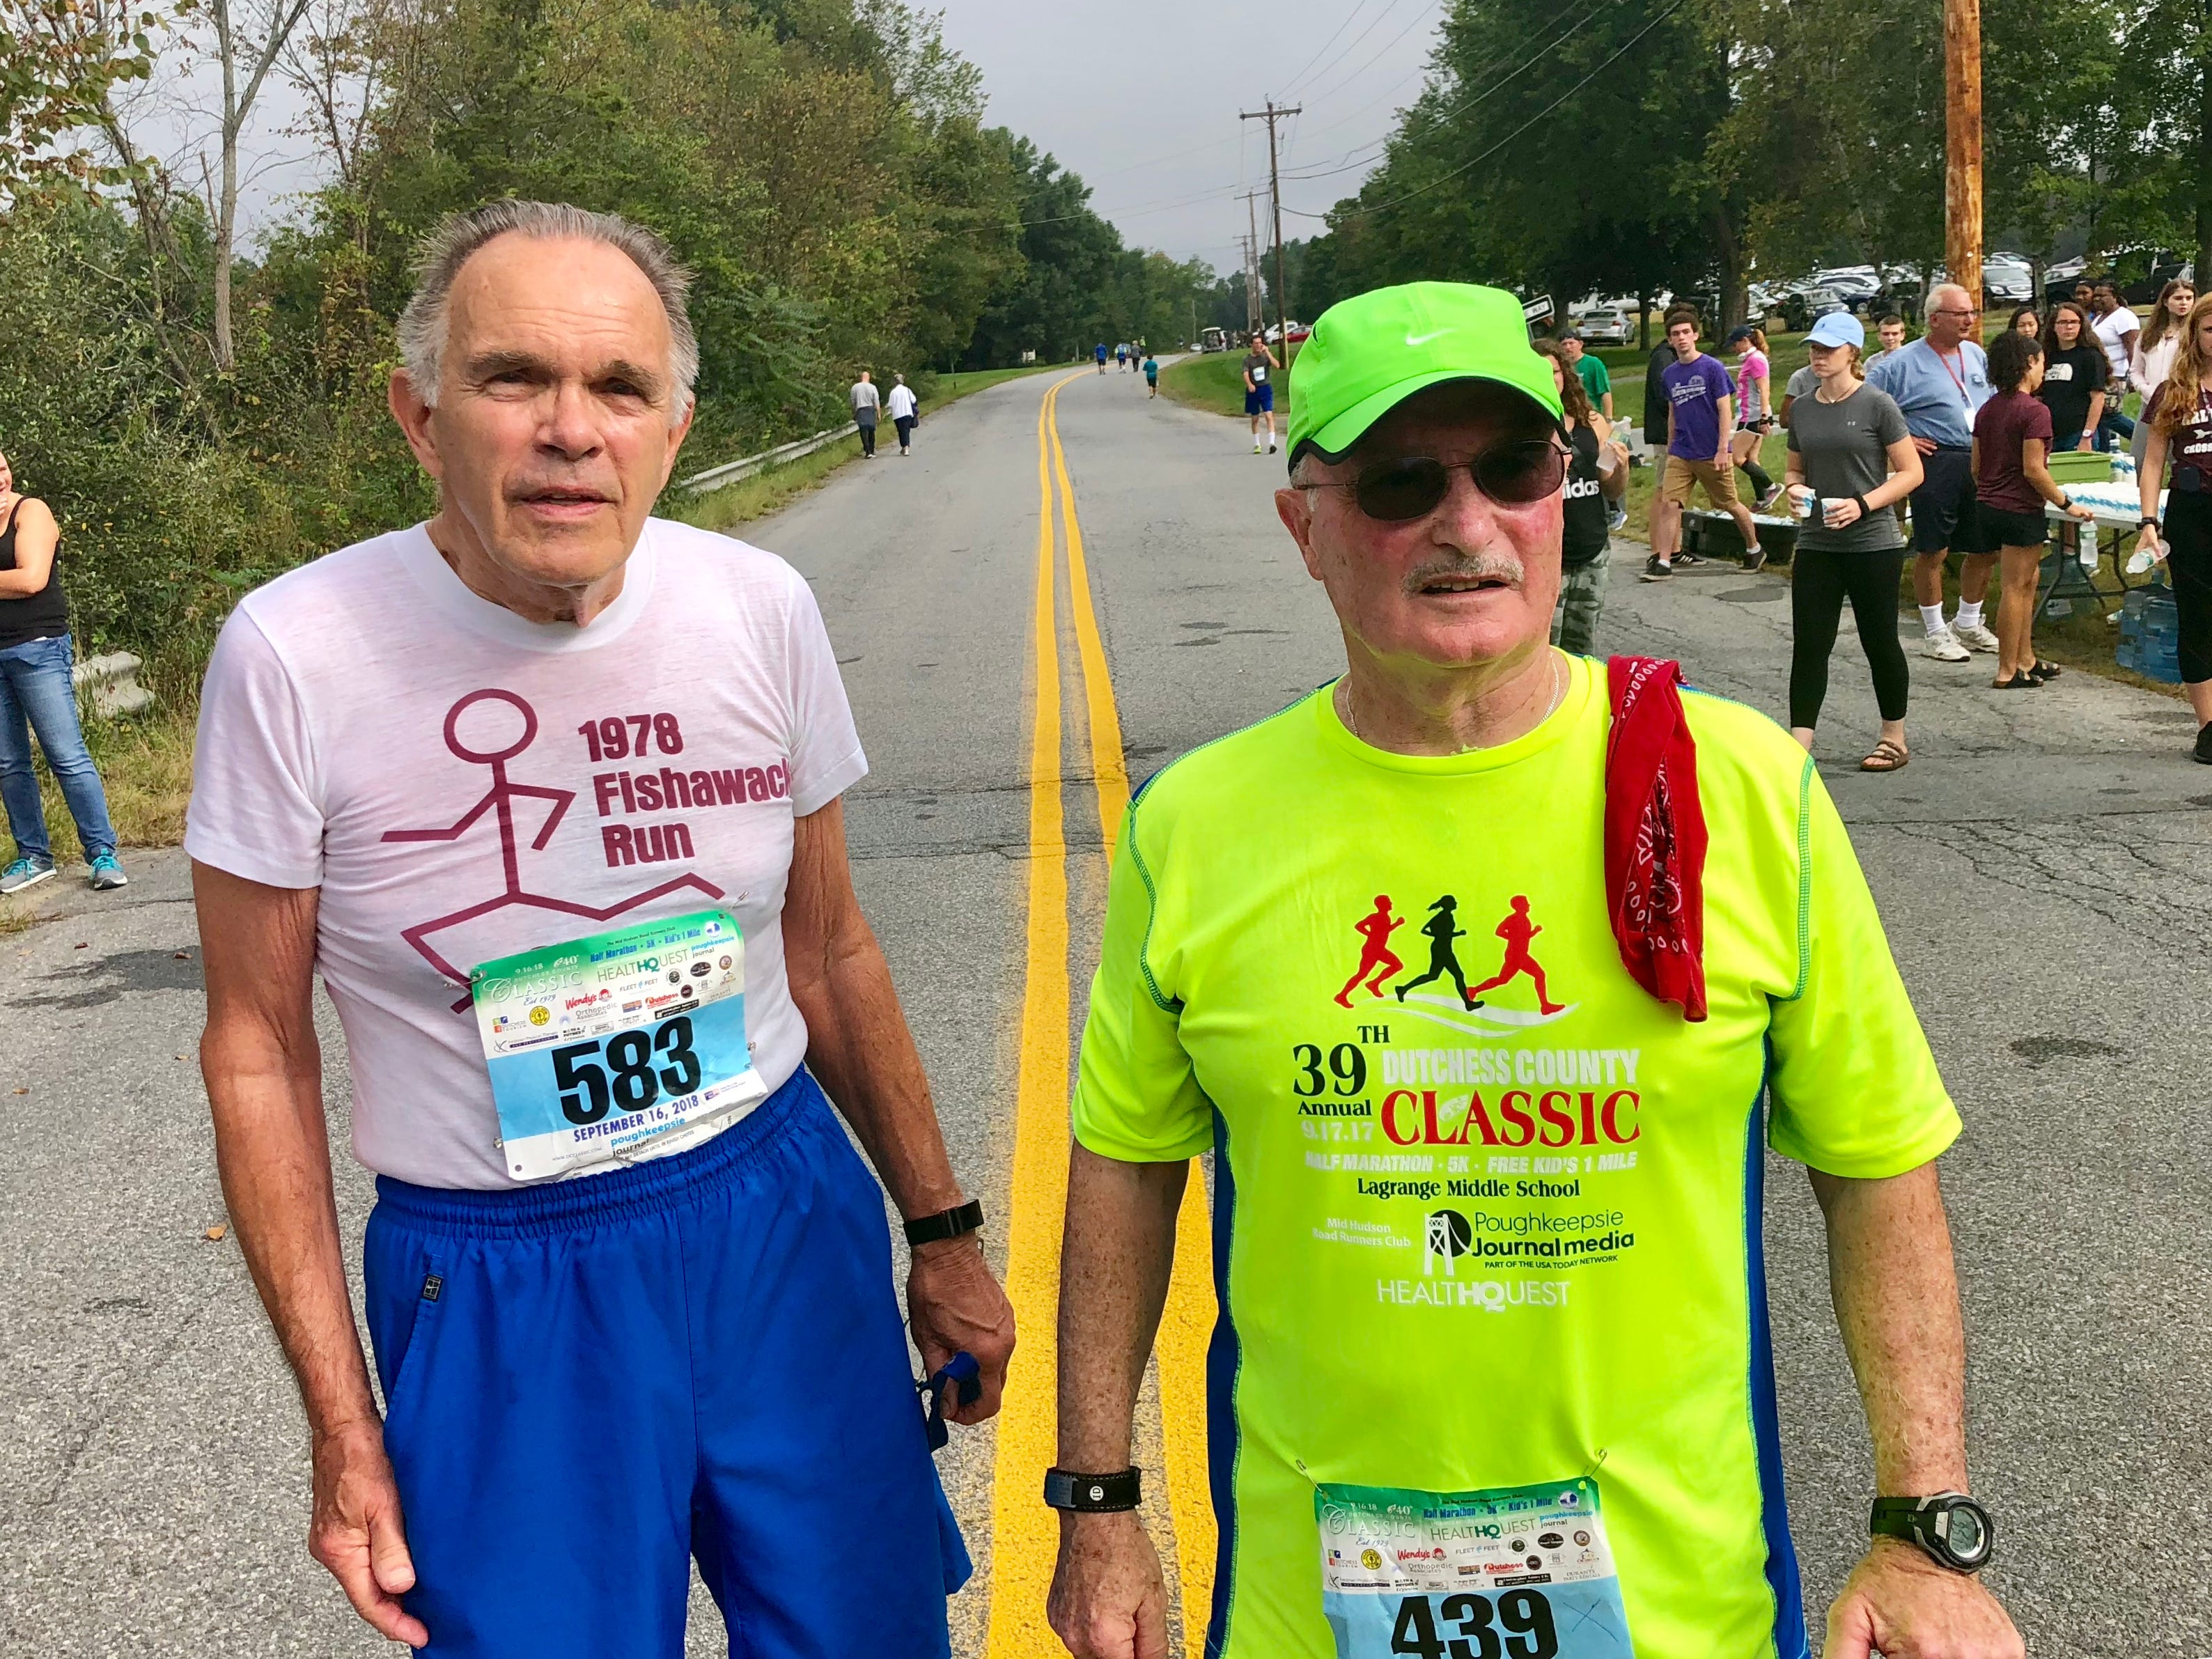 Cancer survivor Fred Maynard, of Poughkeepsie, poses with his friend Fred Policastri of Langrangeveill after the two ran the 5k at the Dutchess County Classic on Sunday.